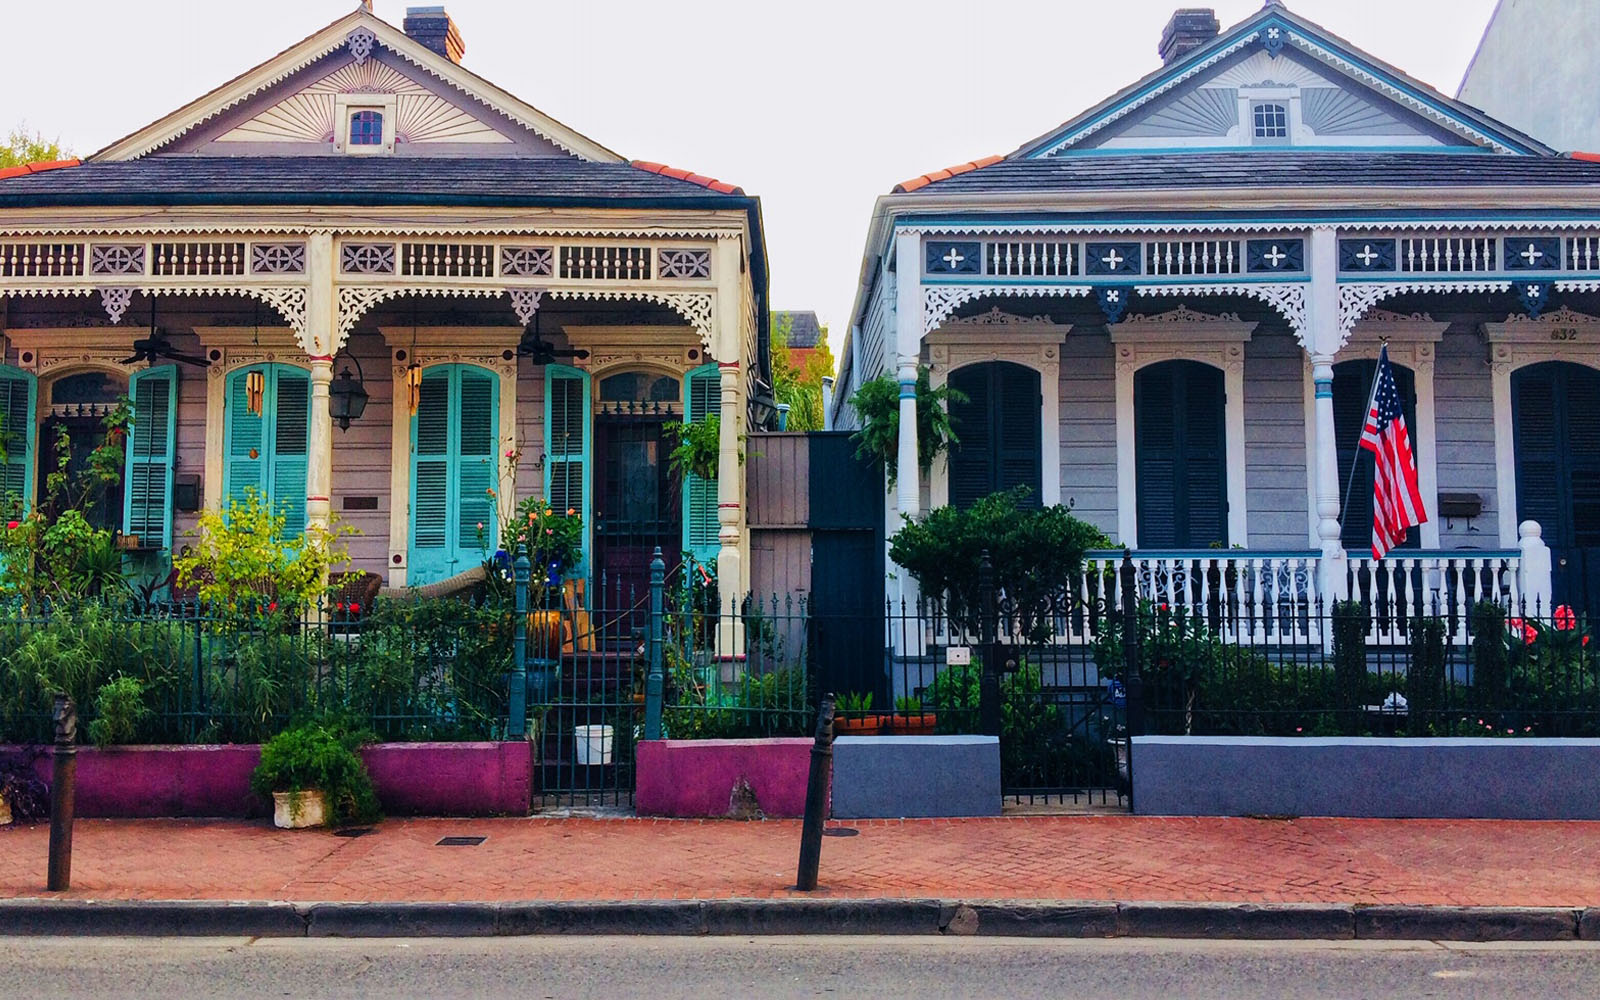 Case colorate a New Orleans, nel French Quarter.